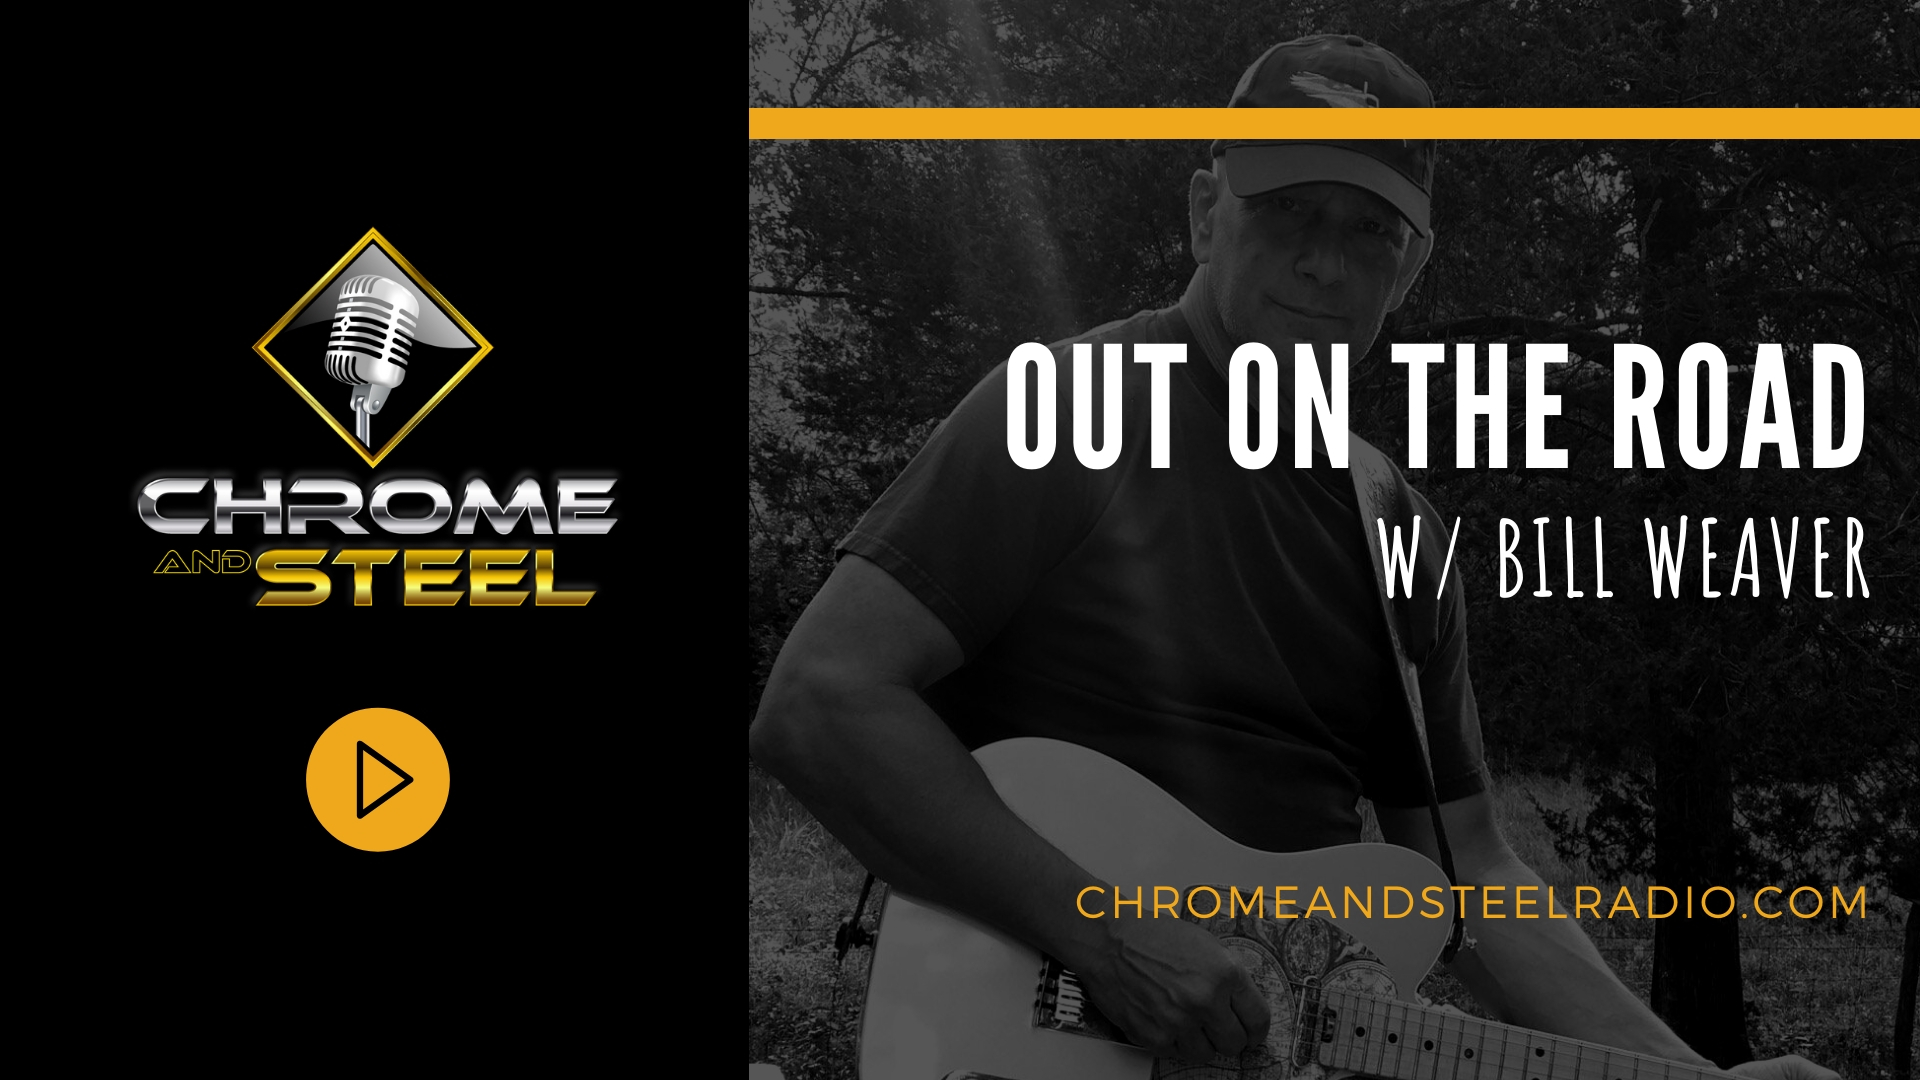 Out on the Road - Bill Weaver